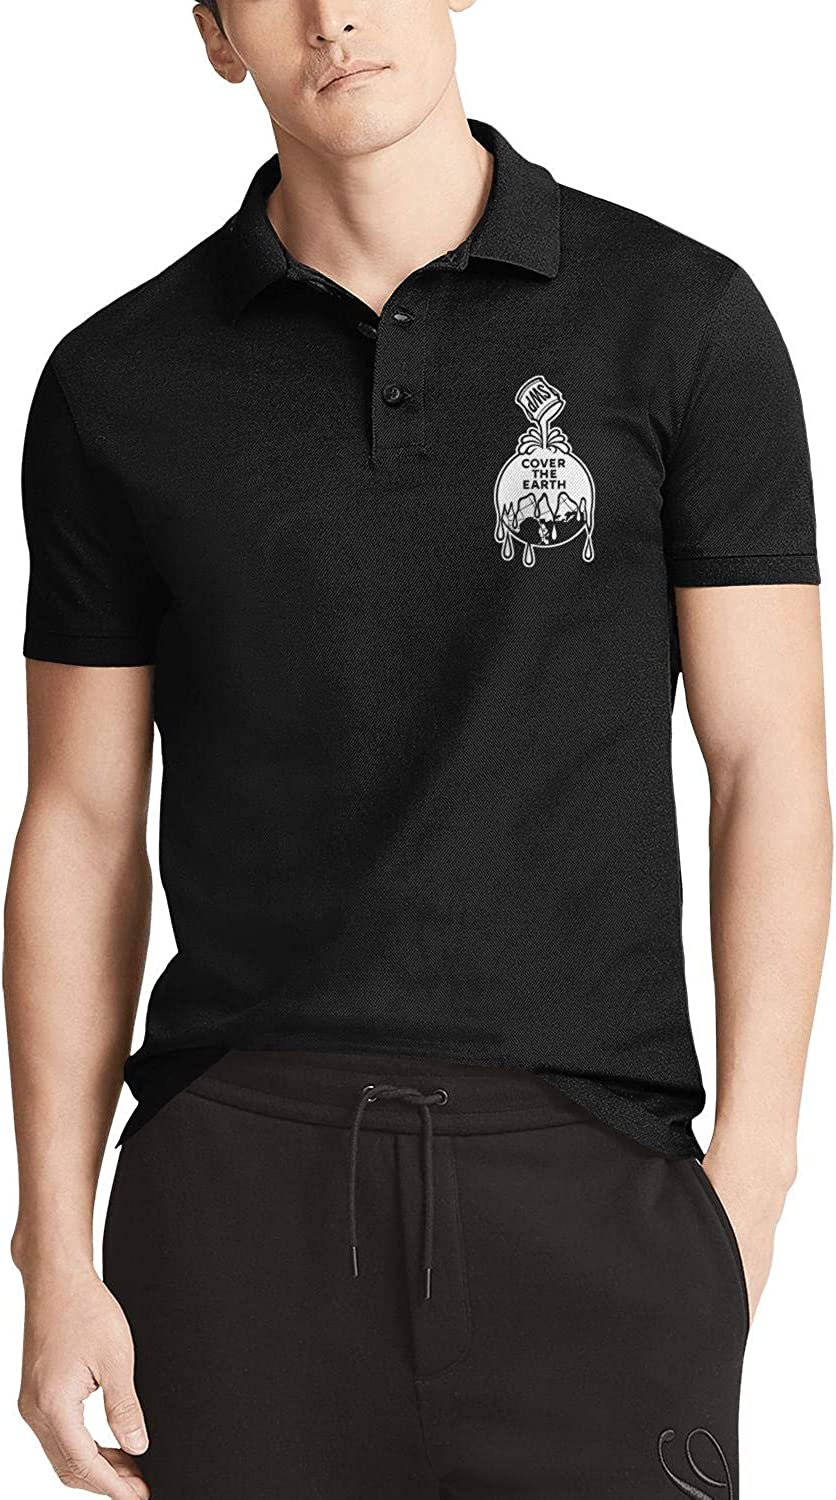 Mens Black Short Sleeve レビューを書けば送料当店負担 Polo 販売期間 限定のお得なタイムセール T-Shirts Collared Waffles-are-Just-